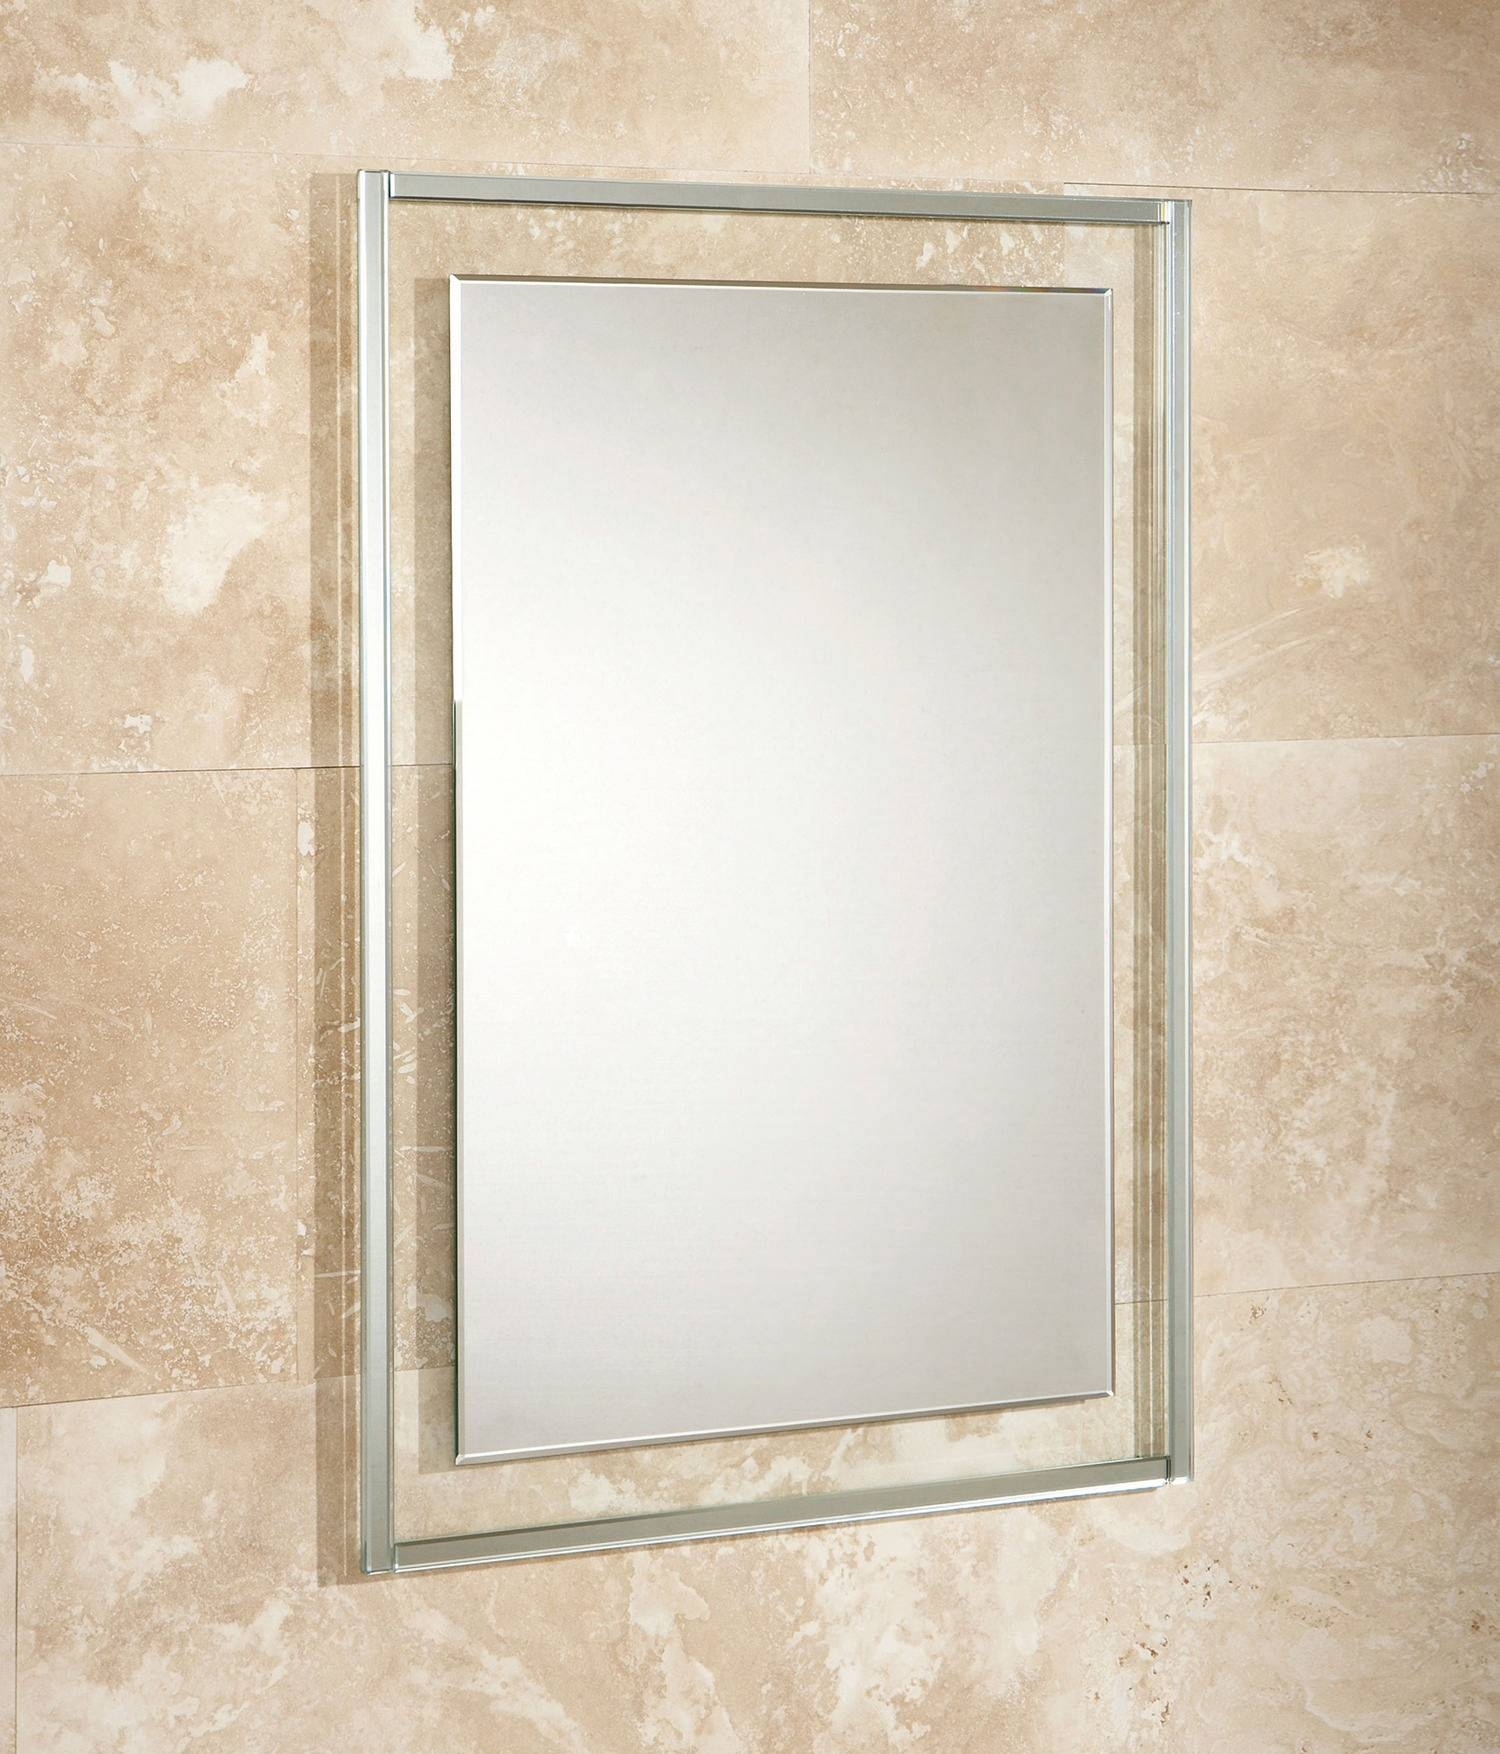 Hib Georgia Bevelled Edge Mirror On Clear Glass Frame 500 X 700Mm throughout Bevelled Edge Mirrors (Image 8 of 15)